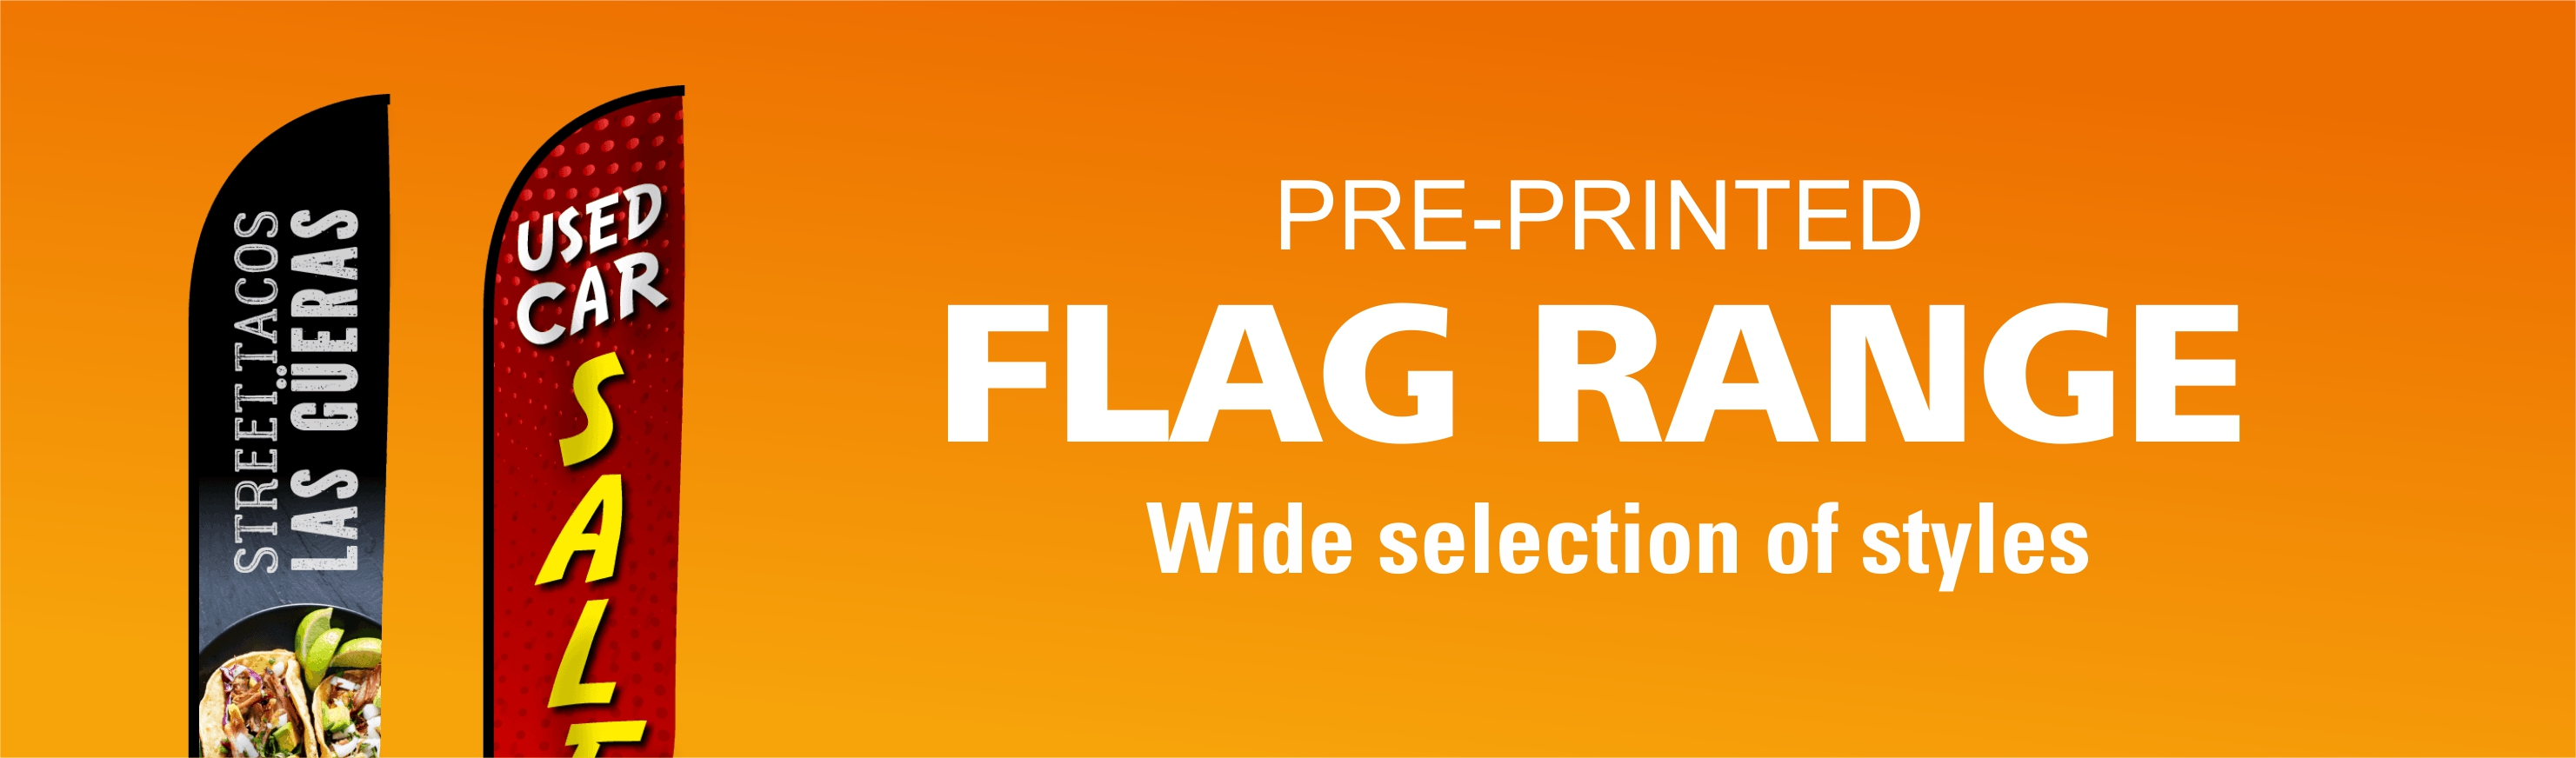 Pre-Printed Flags from $65